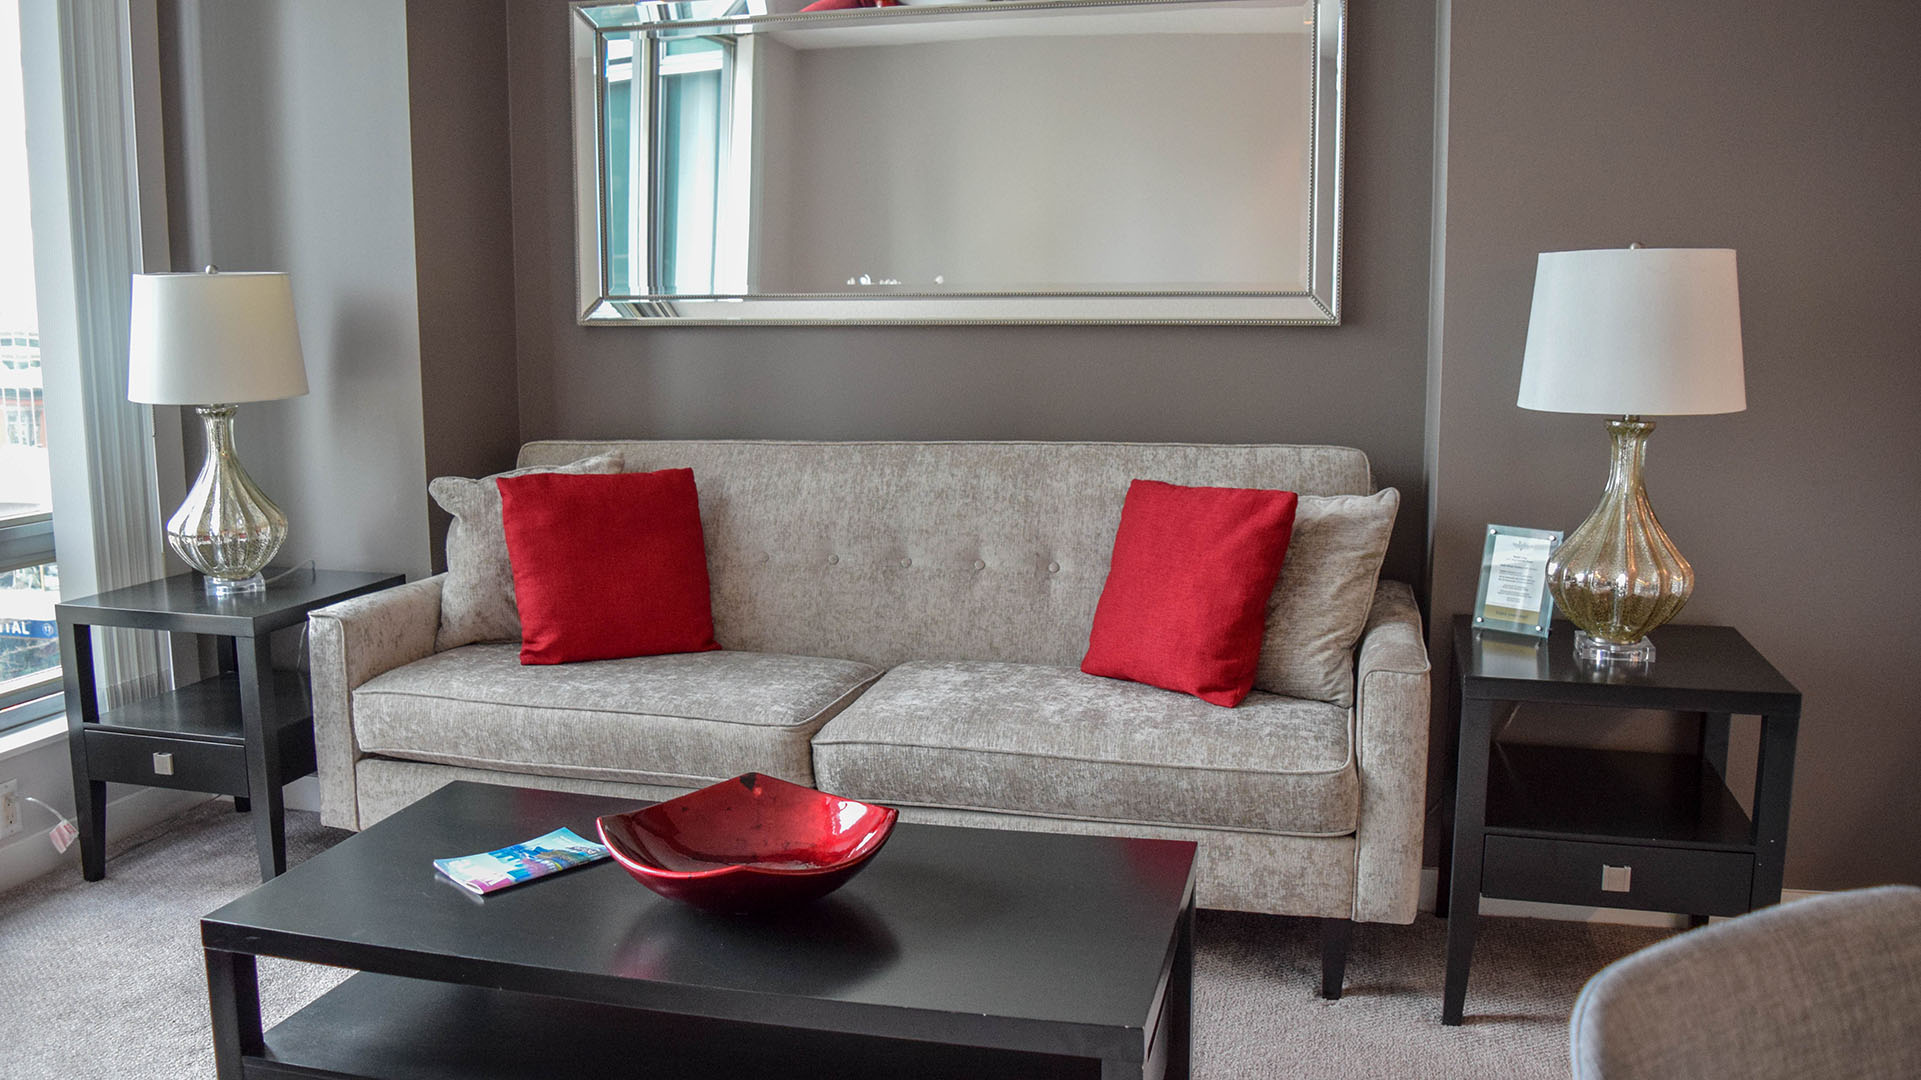 Photo of fully furnished apartment #703 at The Residences on Georgia, 1200 West Georgia Street, Vancouver, BC